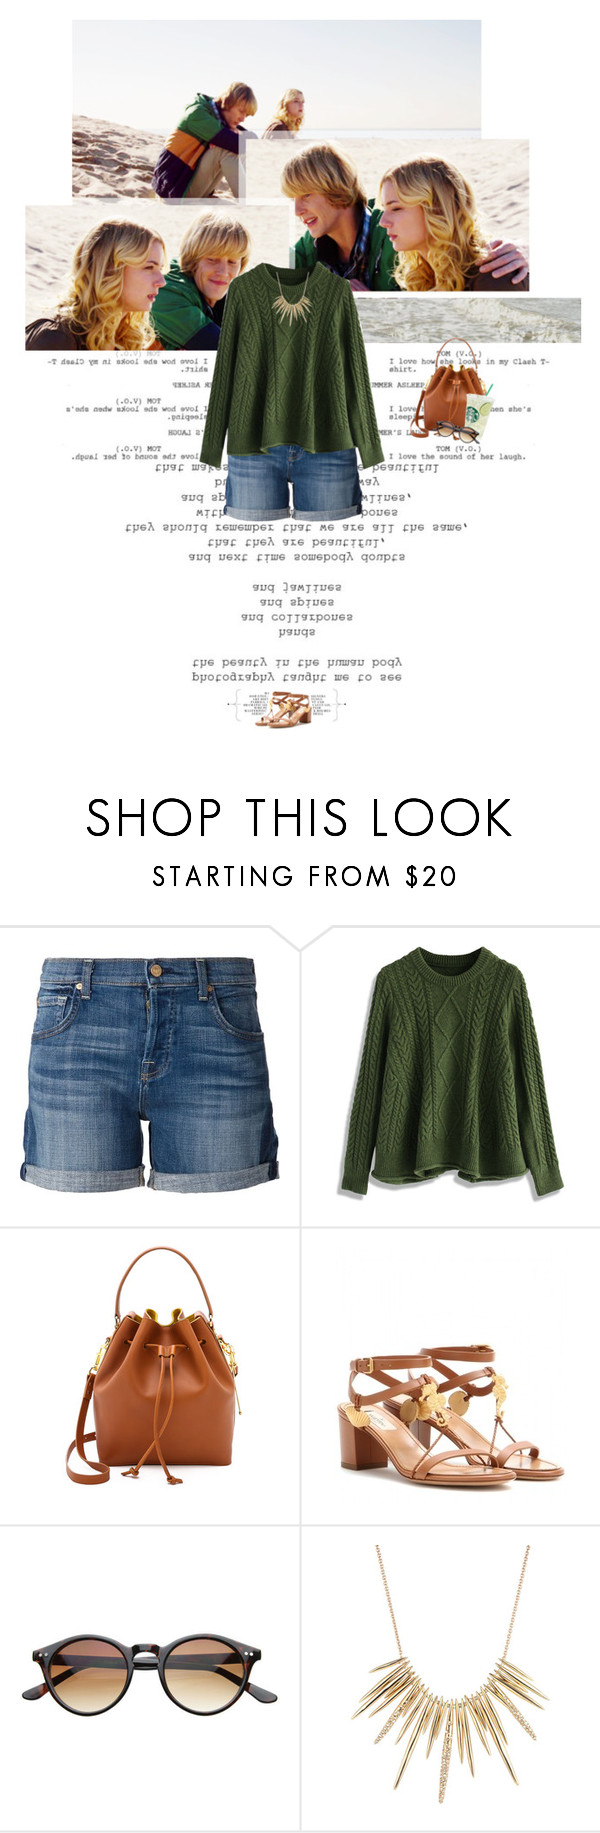 """""""Untitled 3704..."""" by thplacebo ❤ liked on Polyvore featuring 7 For All Mankind, Chicwish, Sophie Hulme, Valentino and Alexis Bittar"""